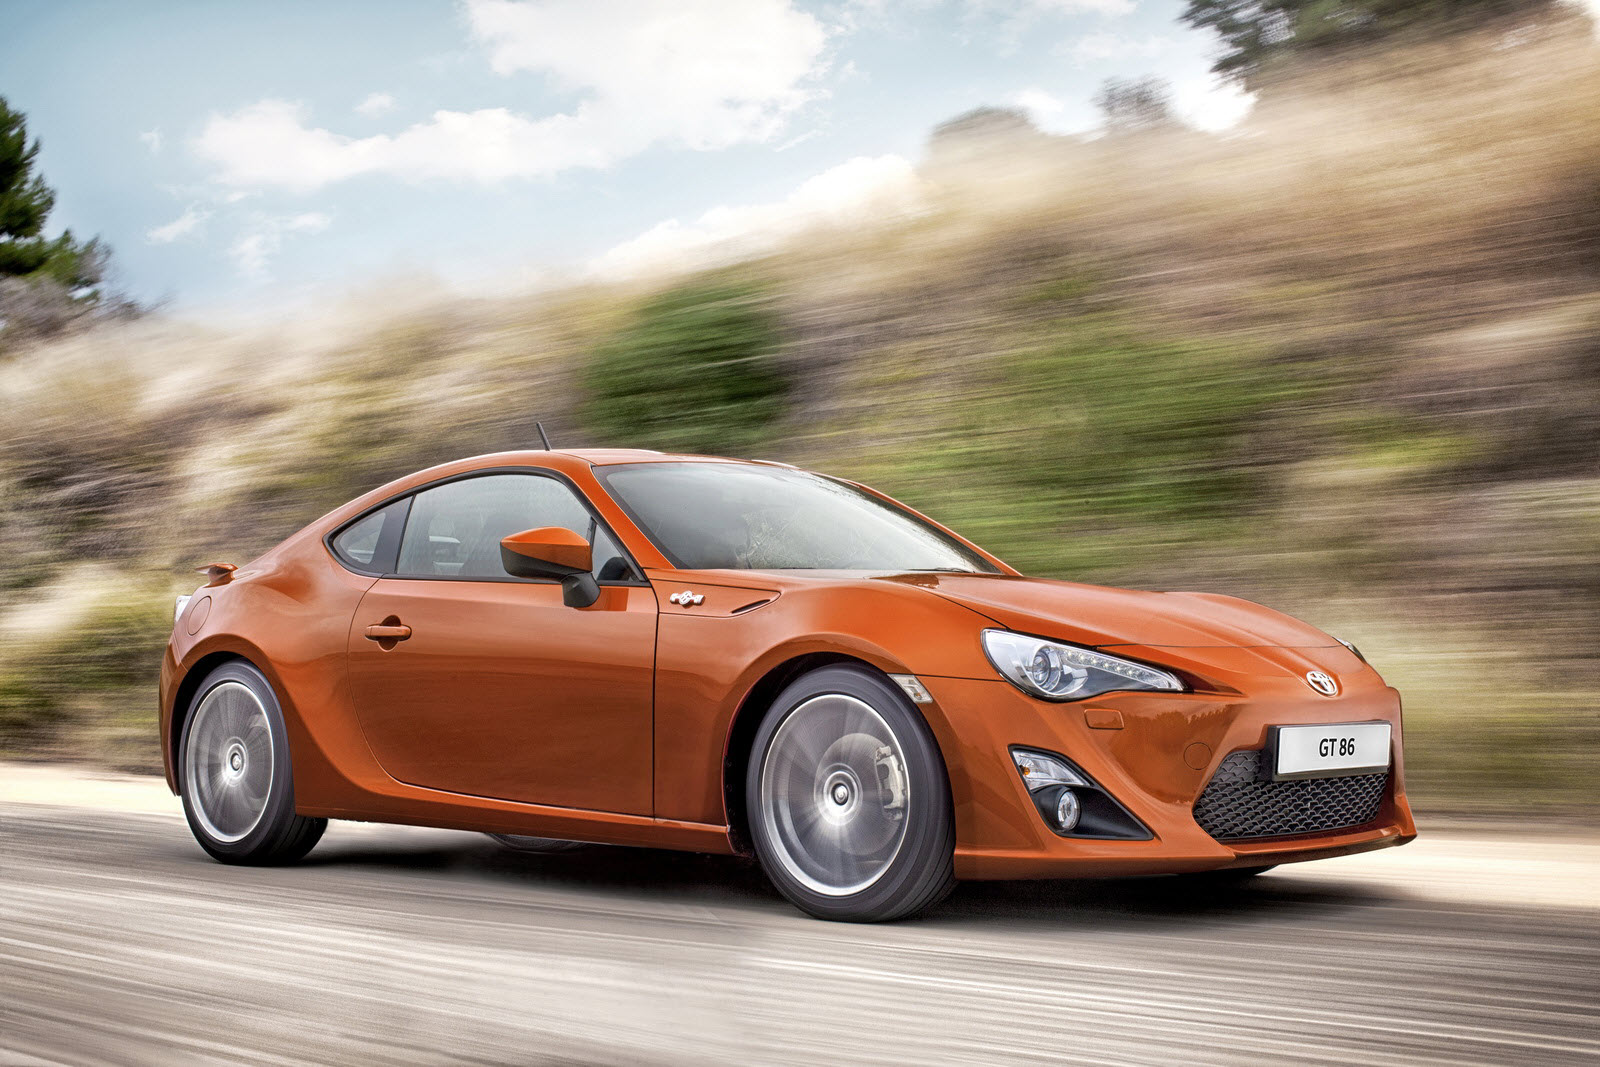 toyota gt86 driving fun purely starting from 29 990 euros. Black Bedroom Furniture Sets. Home Design Ideas